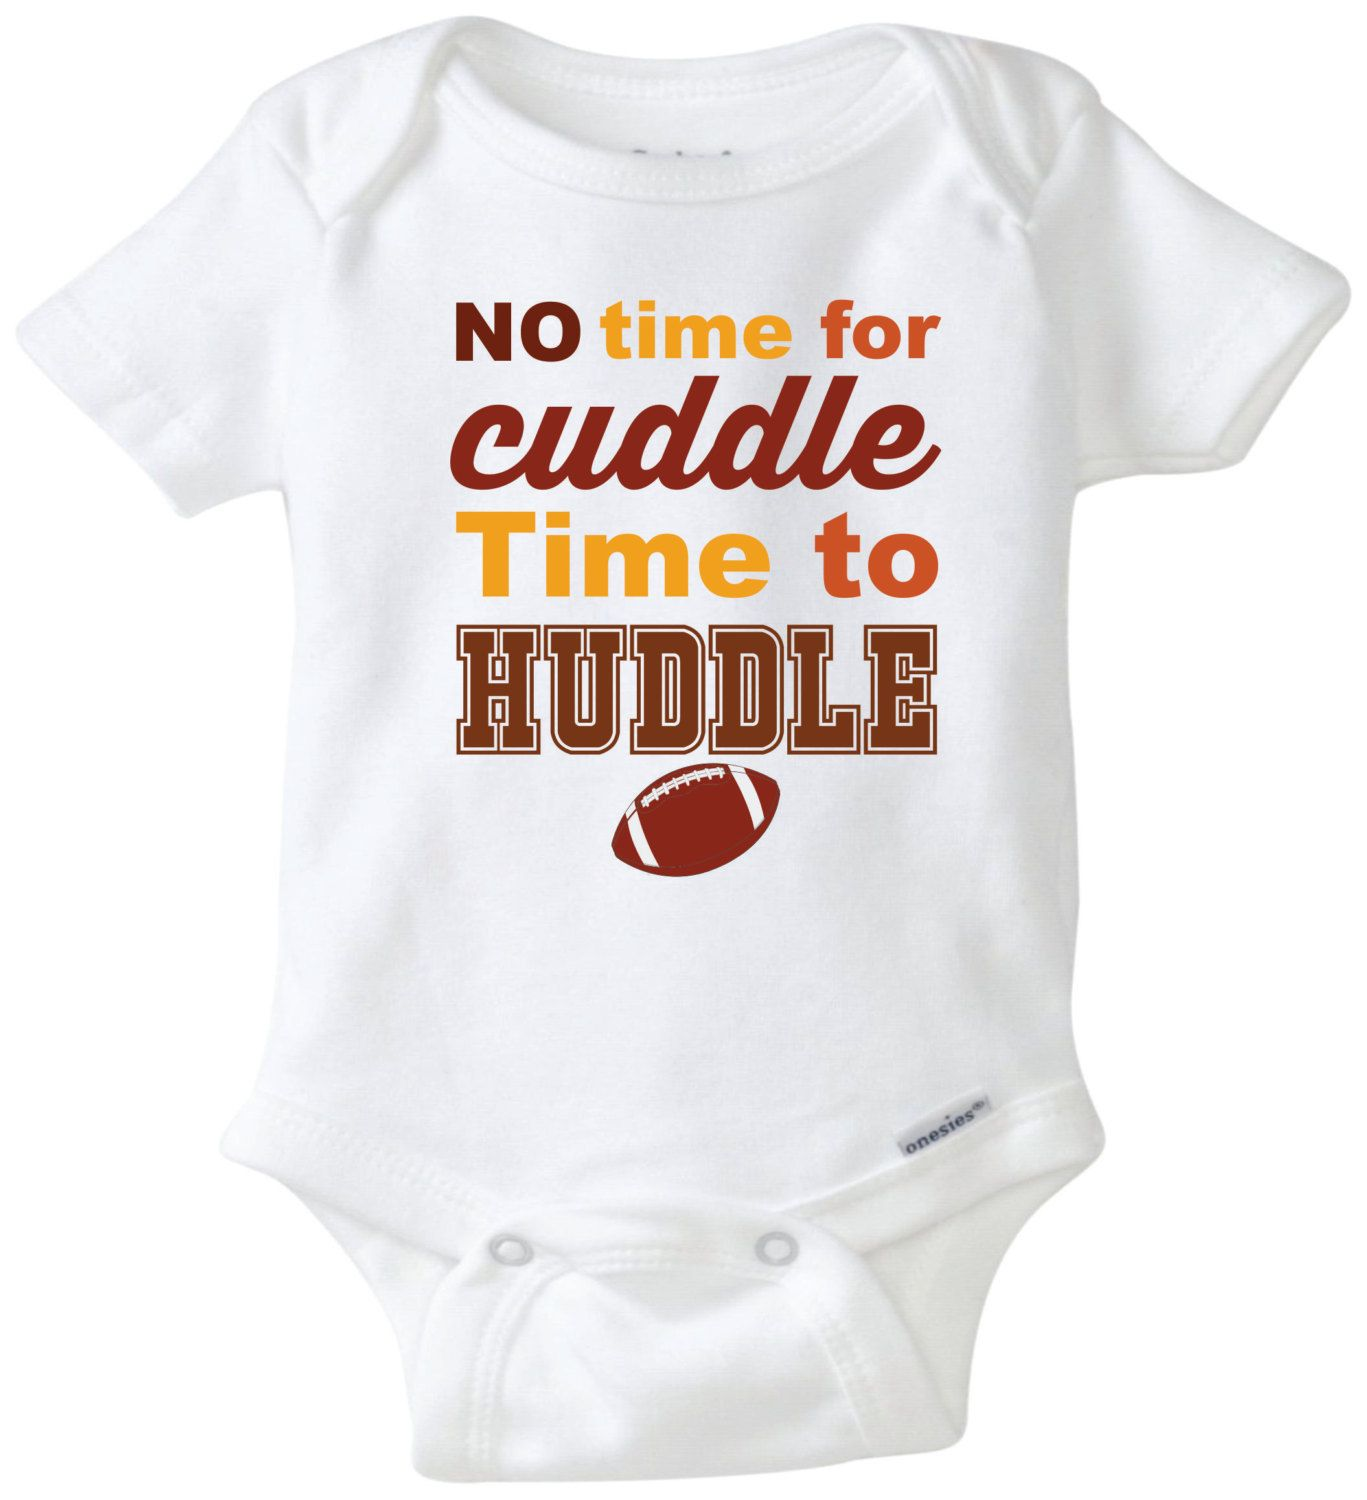 bd5b4286972 Football theme baby bodysuit. Baby onesie. Unisex baby clothing. Newborn  outfit. Baby shower gift by mkclassyprints on Etsy